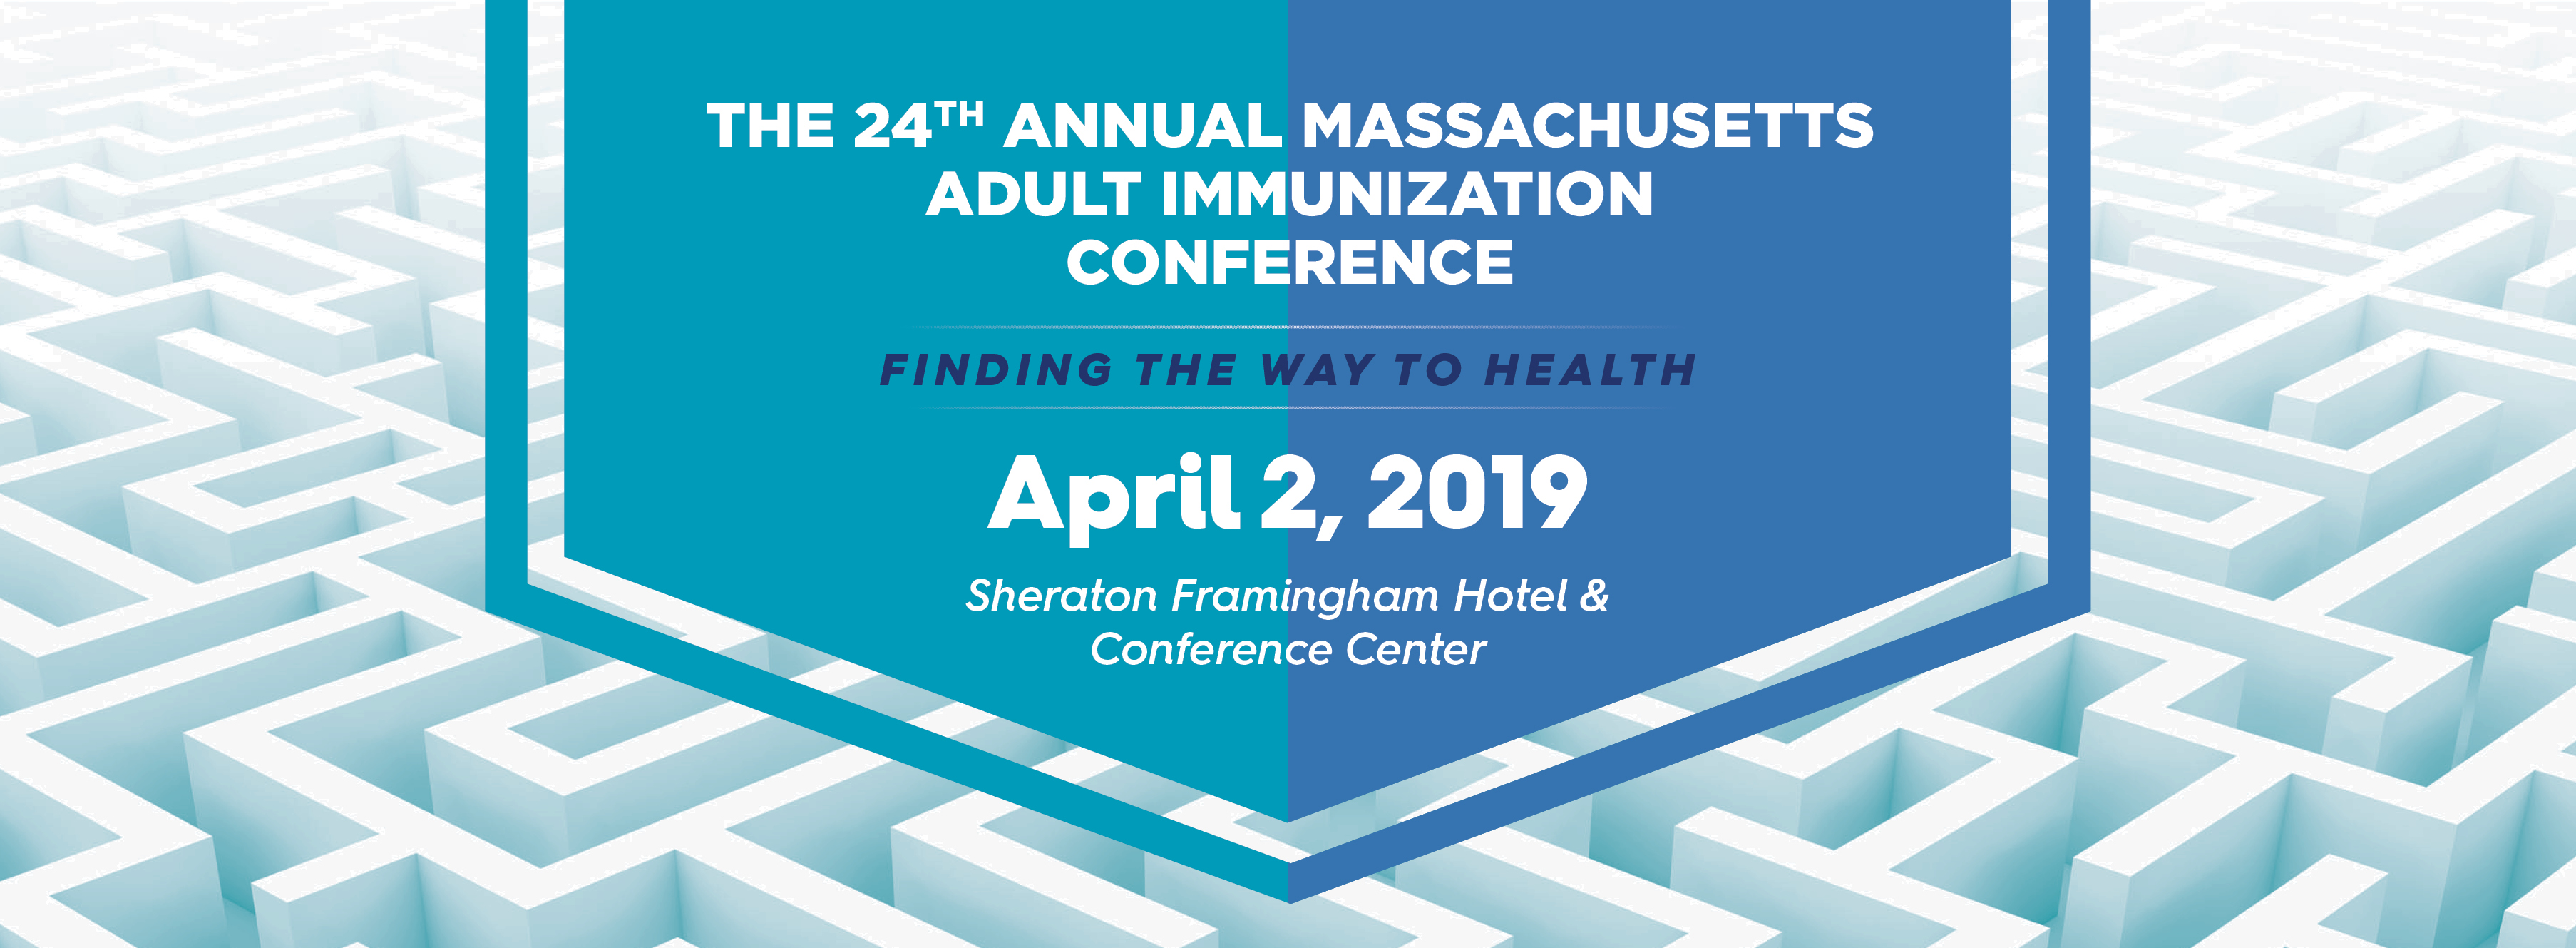 24th Annual Massachusetts Adult Immunization Conference